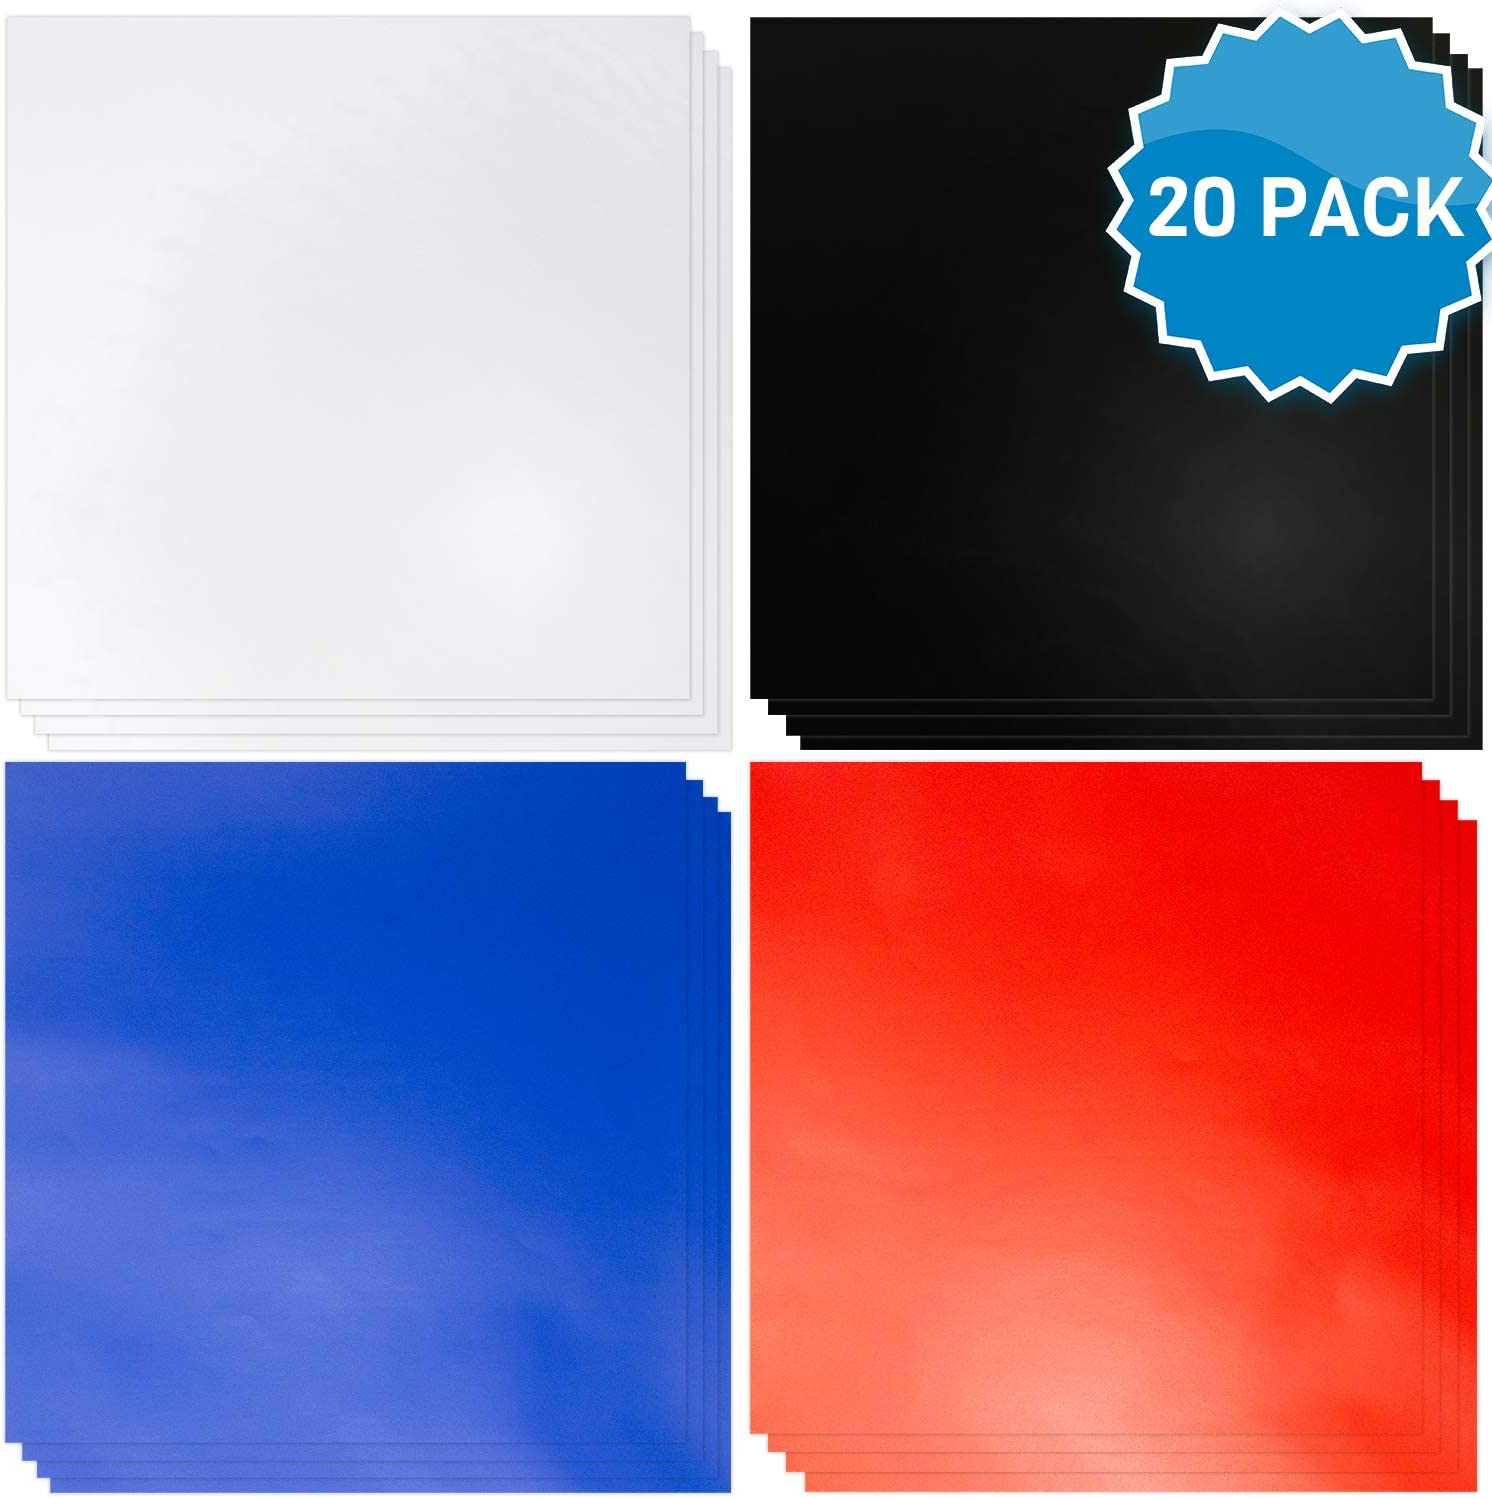 """Vinyl Sheets with Adhesive [20, 12""""x12"""" Sheets] Matte Blue, Red, Black & White Permanent Self Adhesive Vinyl Sheets like Oracle 651 Vinyl Rolls. Permanent Vinyl for Cricut, Silhouette or Outdoor Vinyl"""